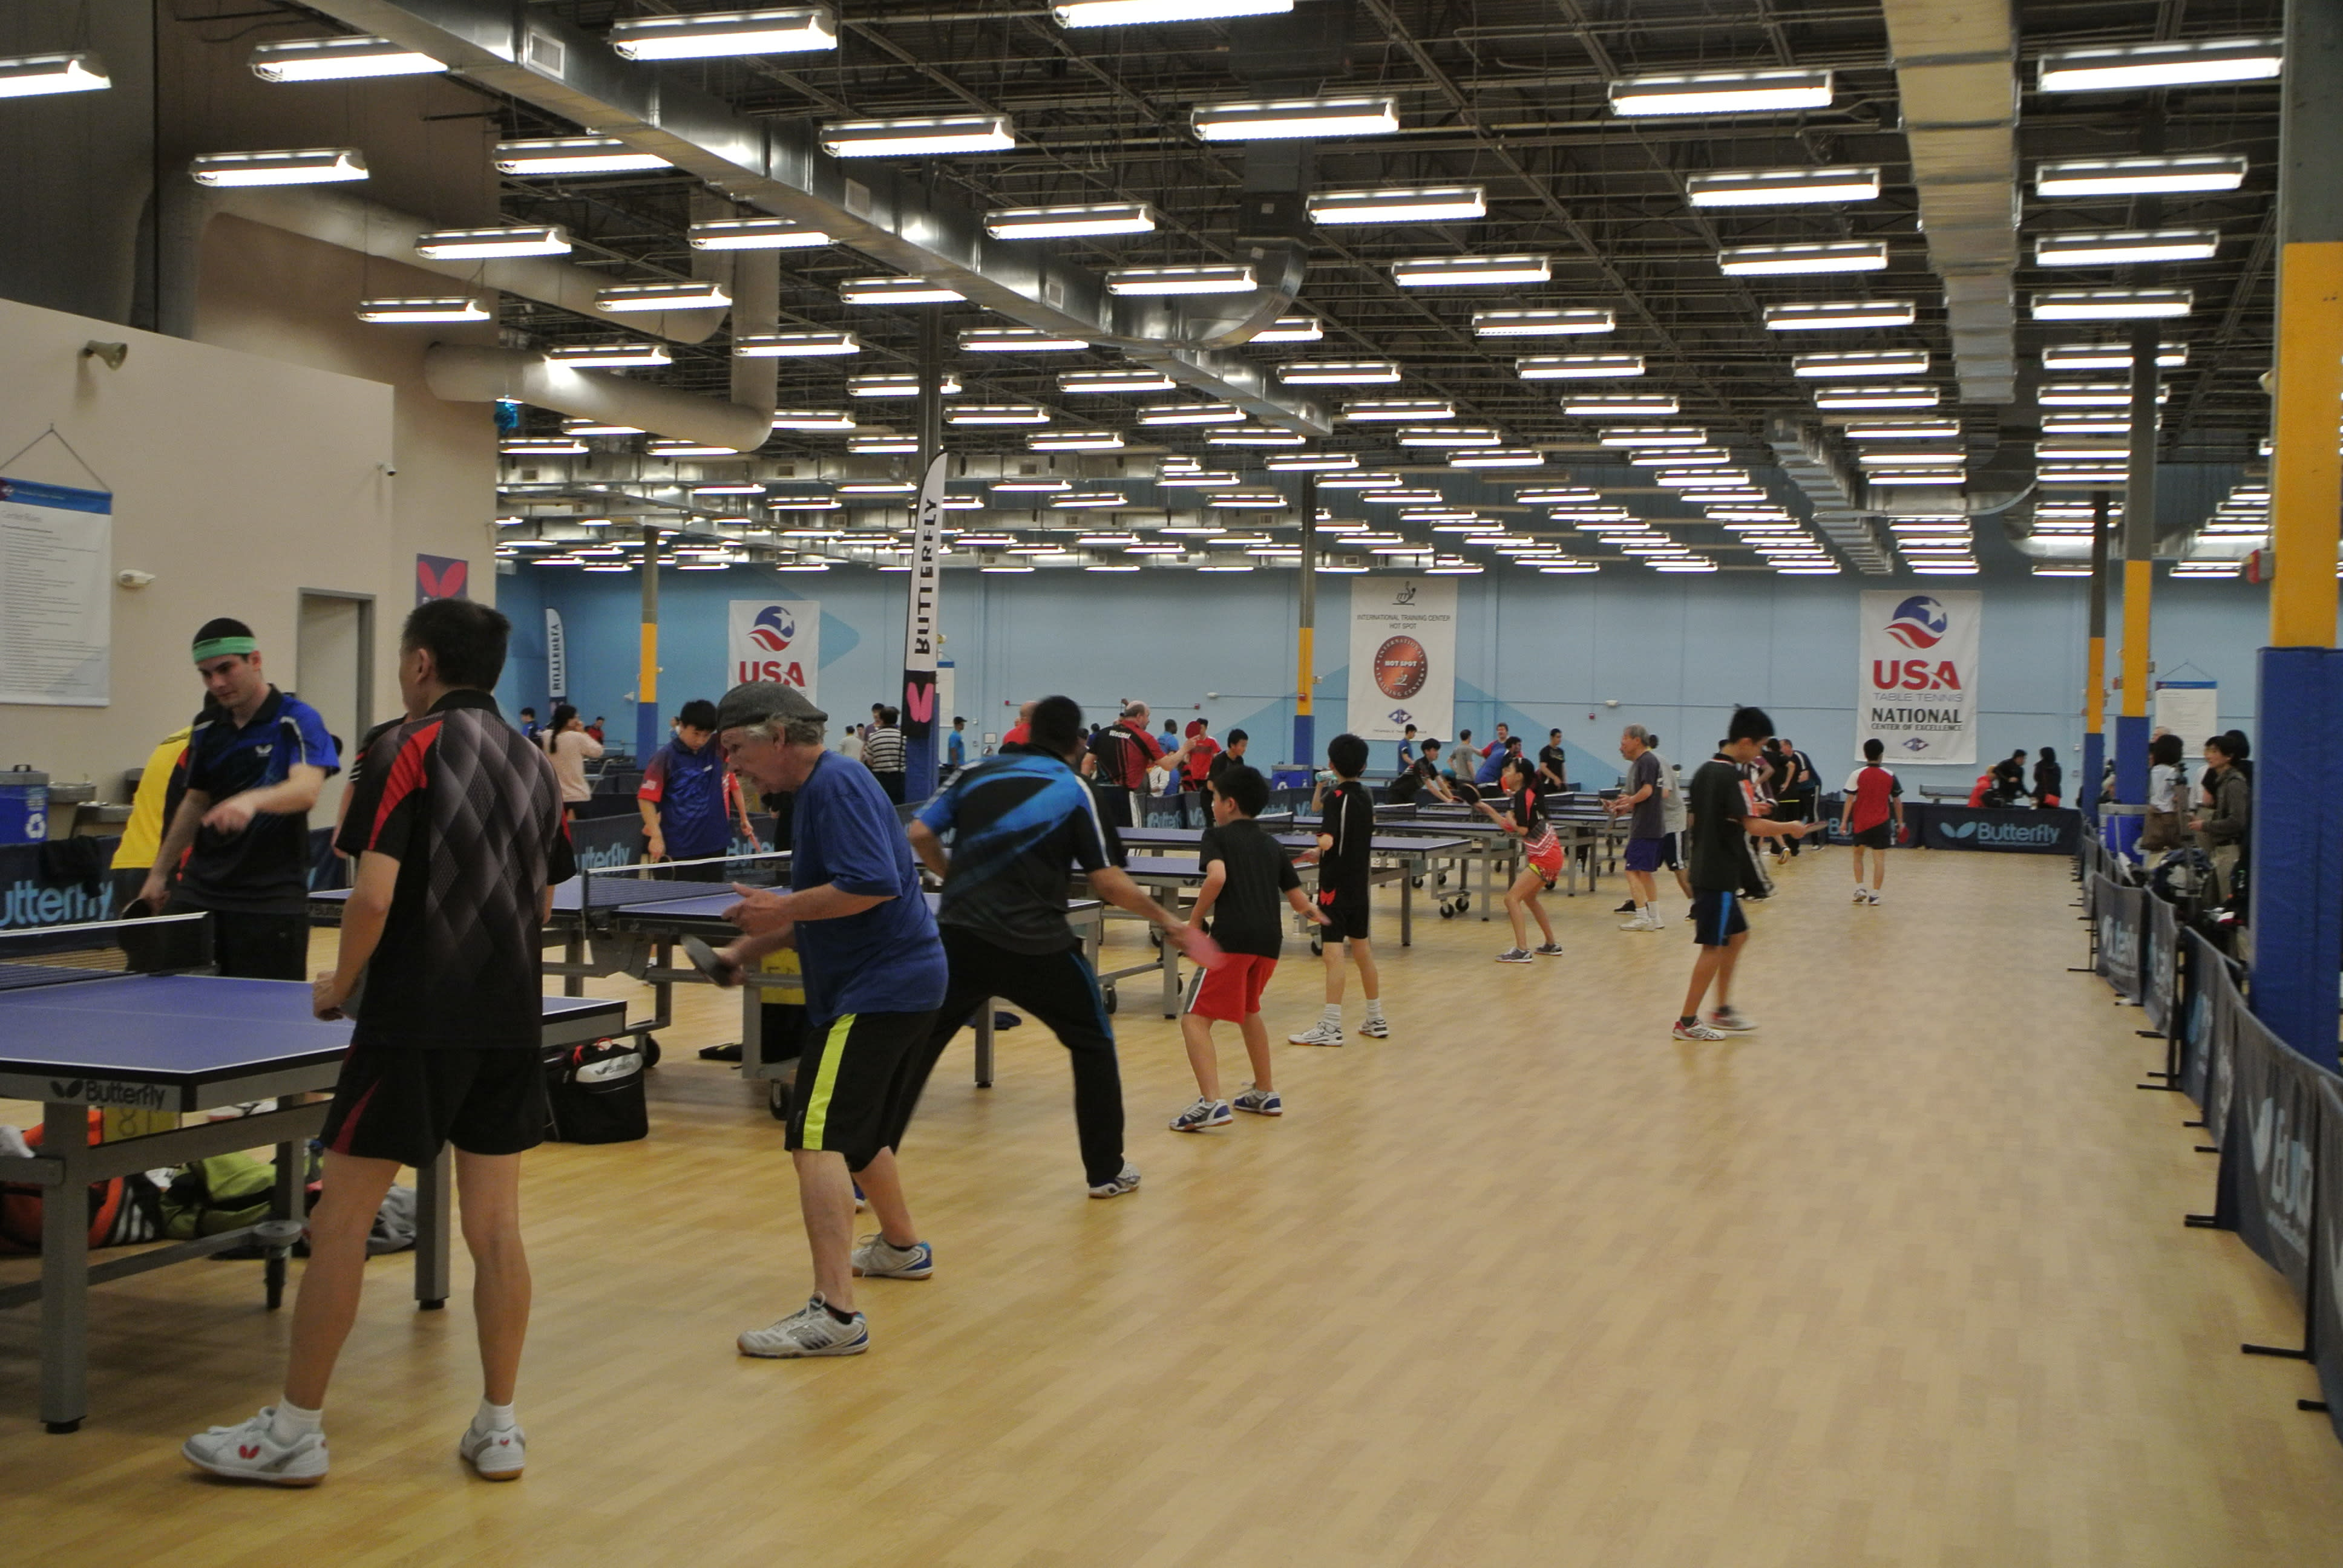 Tournament warm-up - Courtesy of Triangle Table Tennis